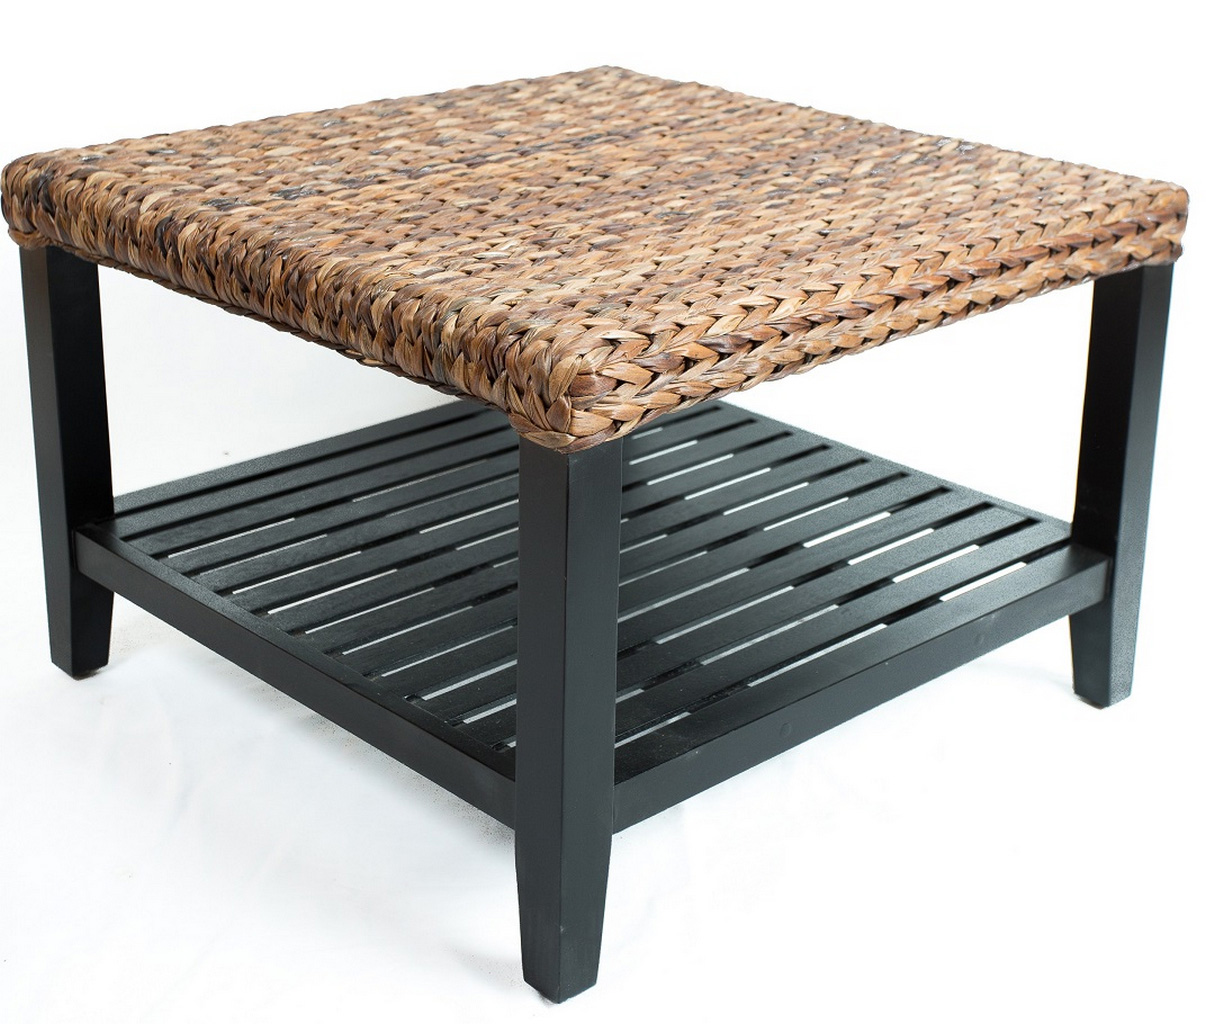 seagrass coffee table ottoman-Cool-Seagrass-Coffee-Table